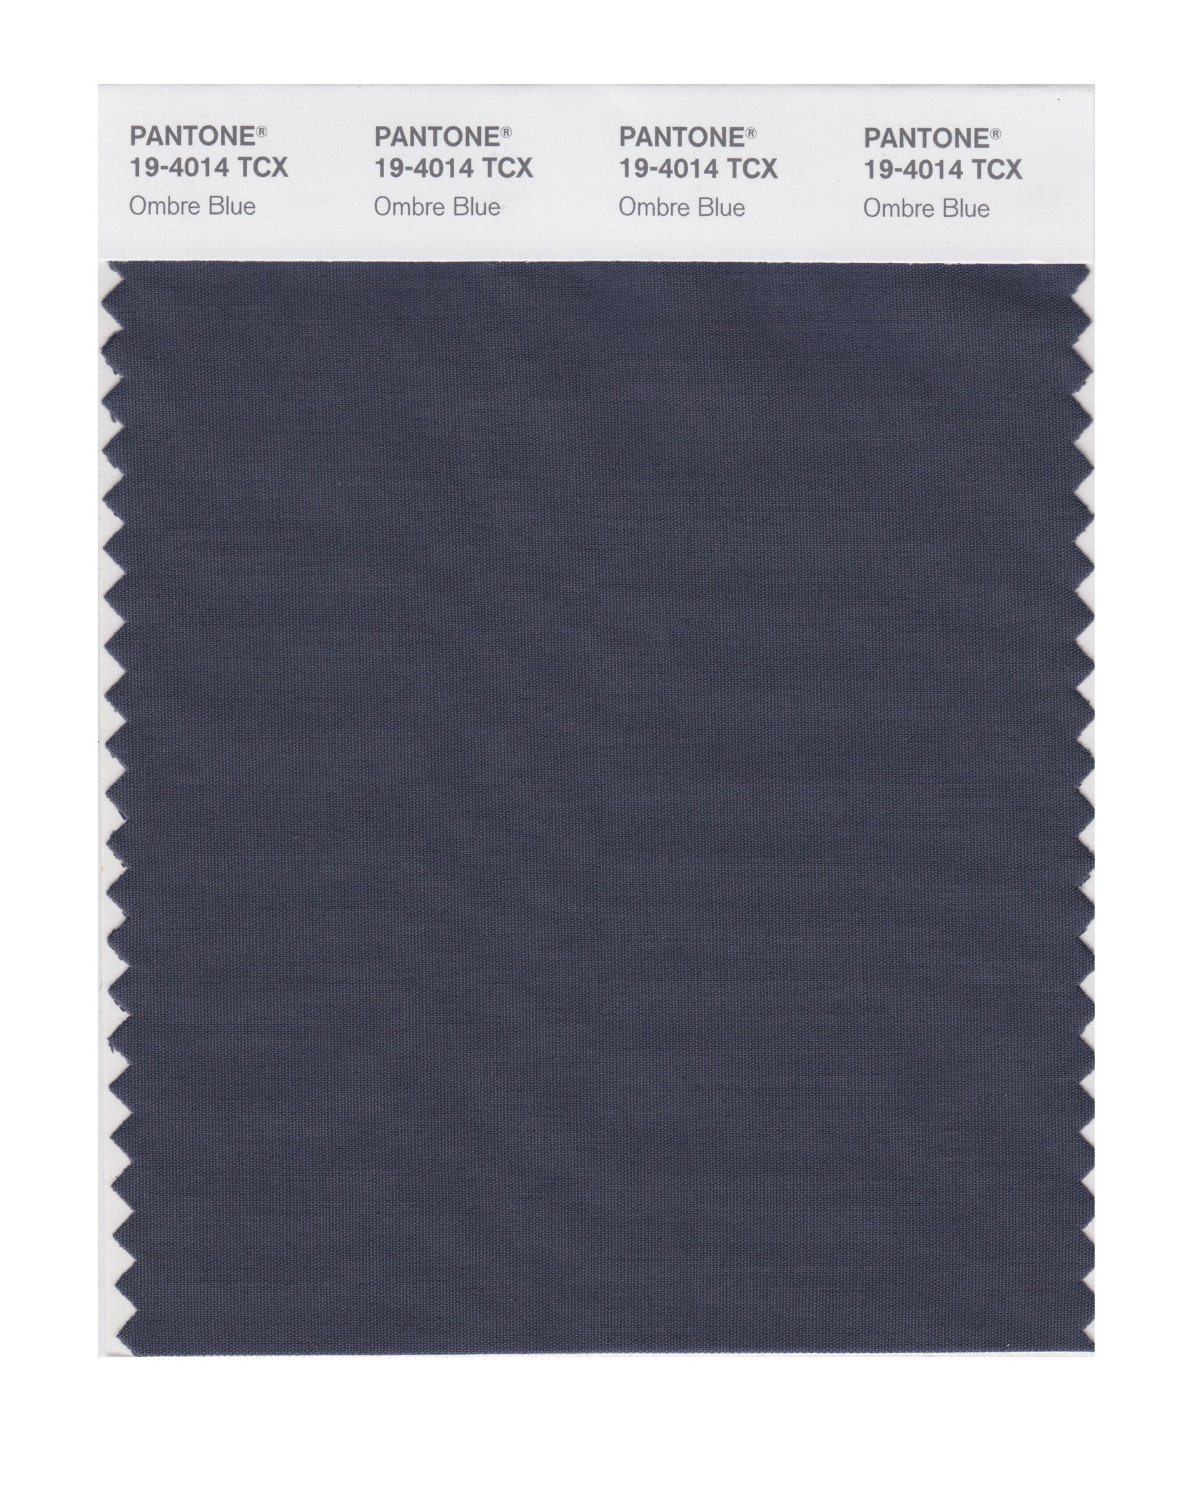 Pantone Smart Swatch 19-4014 Ombre Blue